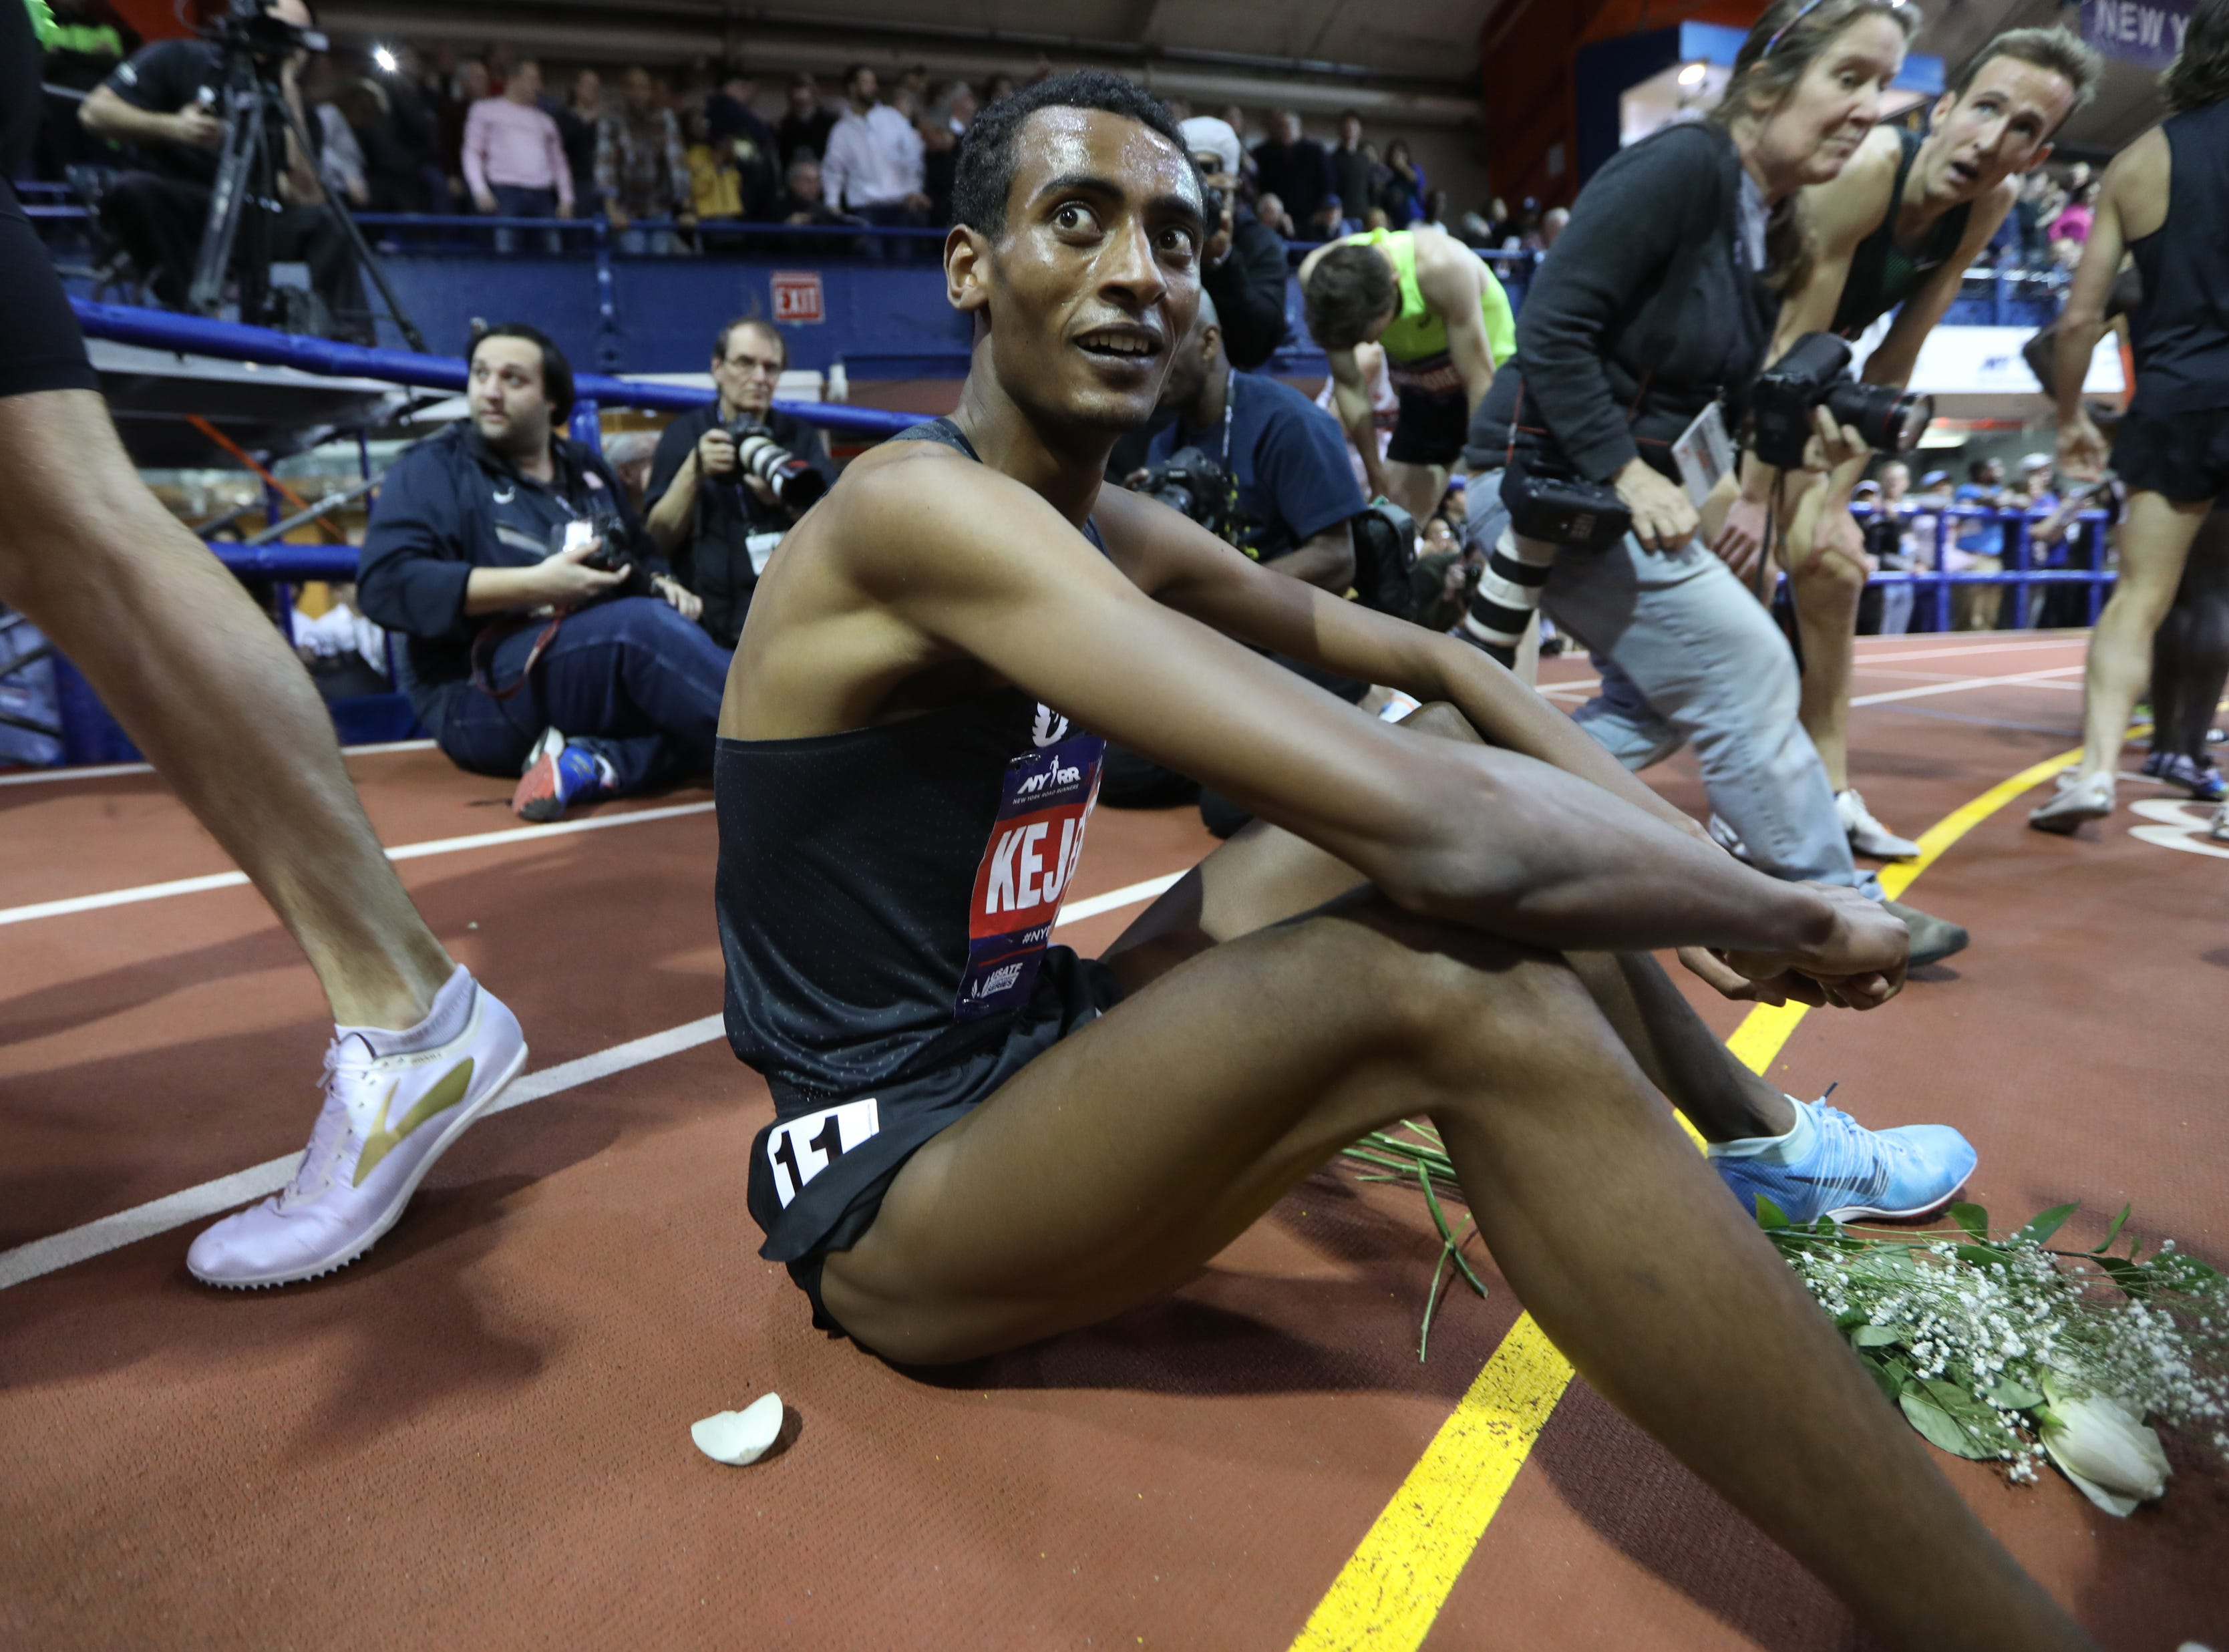 Yomif Kejelcha, is shown after winning the NYRR Men's Wanamaker Mile.  Kejelcha came with in a hundredth of a second from the world record.  His time was 3:48.46.  Saturday, February 9, 2019